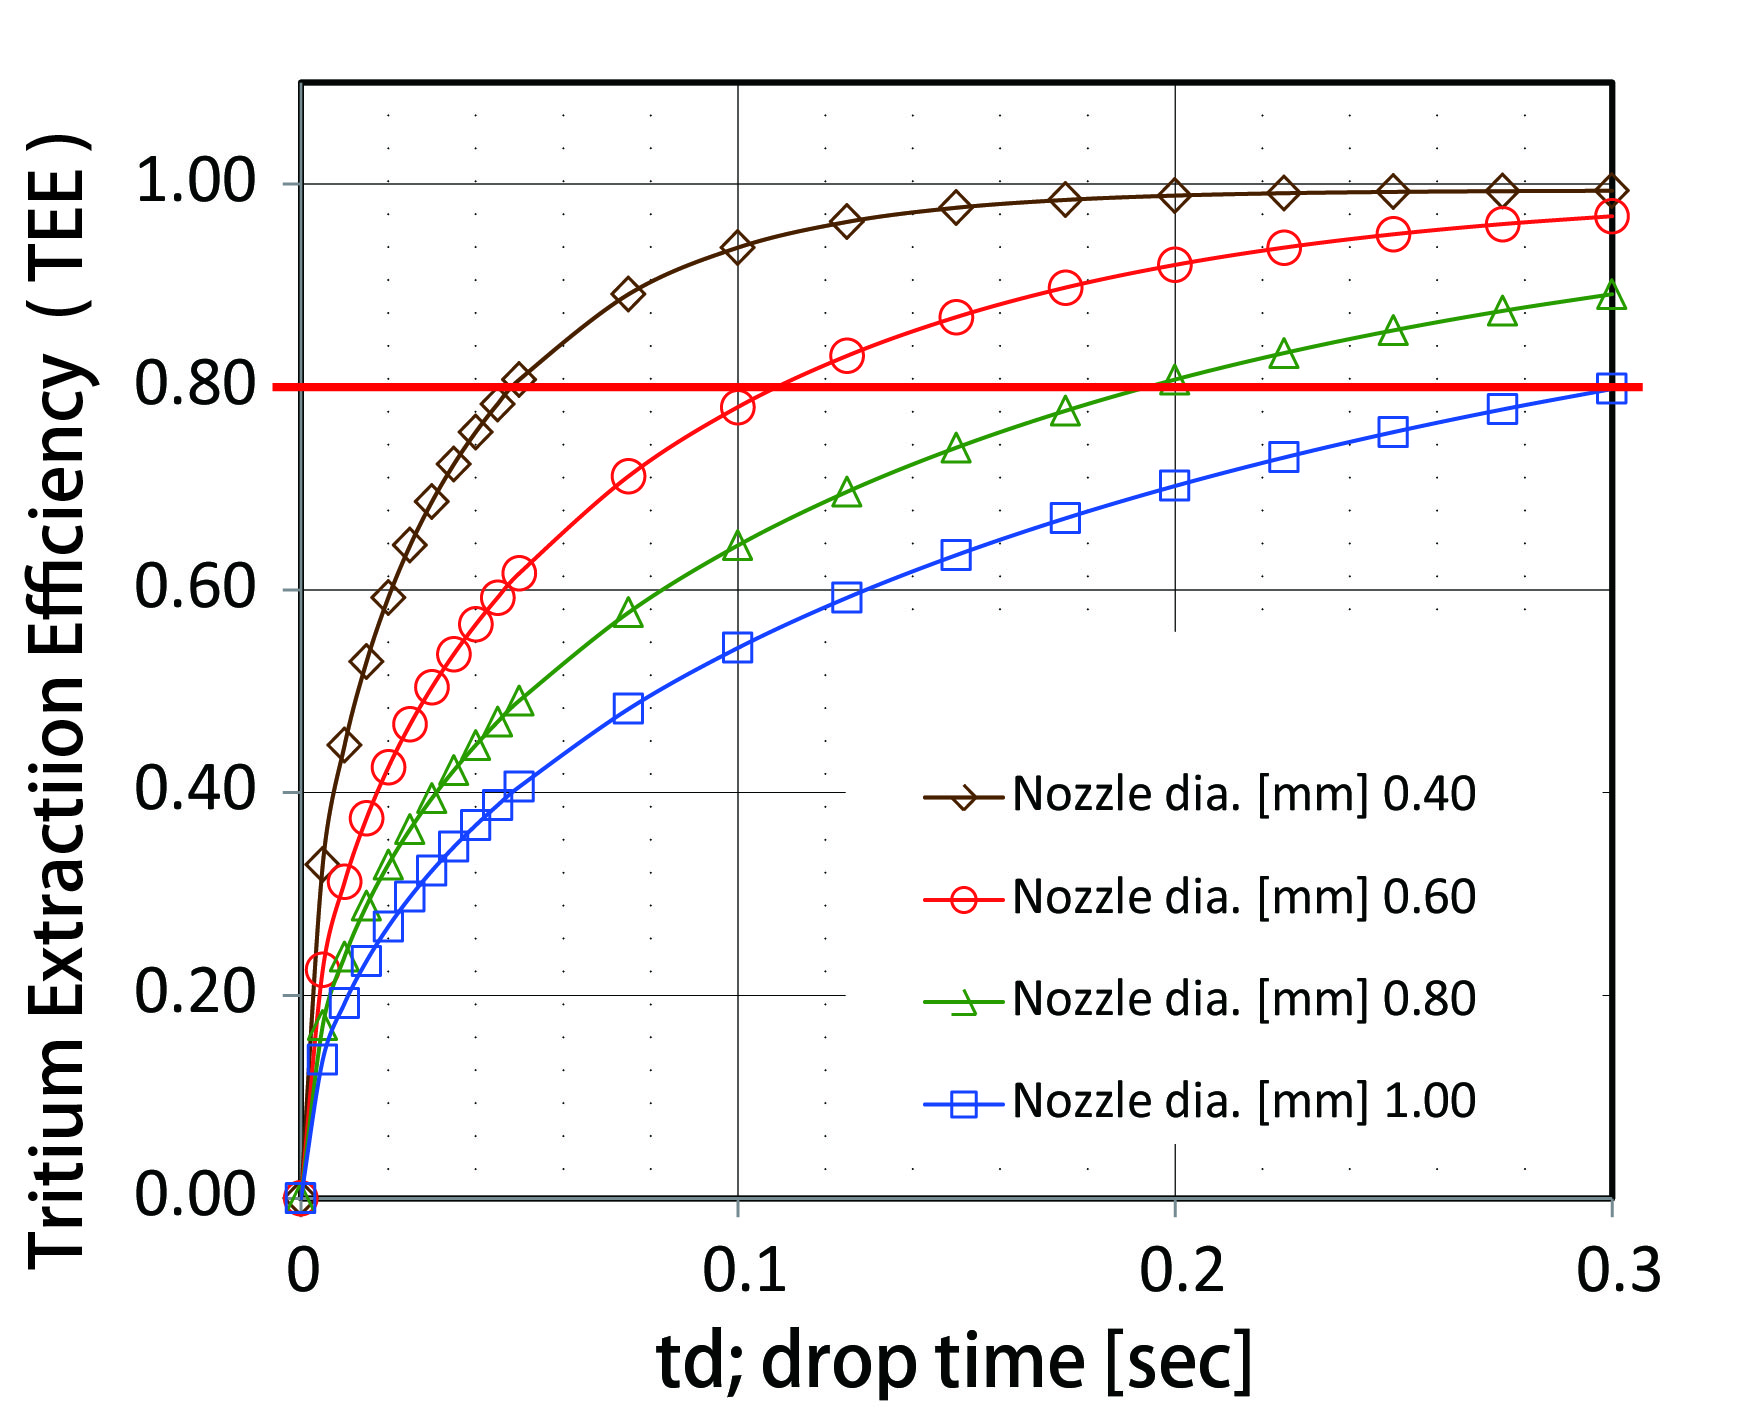 Fig. 1. Estimated TEE as a function of the falling period. TEE results using four different nozzle diameters are plotted on a same chart. The quasi dispersion coefficient is 3.4×10-7 m2s-1 [A]. The TEE of 0.8 is the assumed target of this study as a typical requirement for such as EU-DEMO.